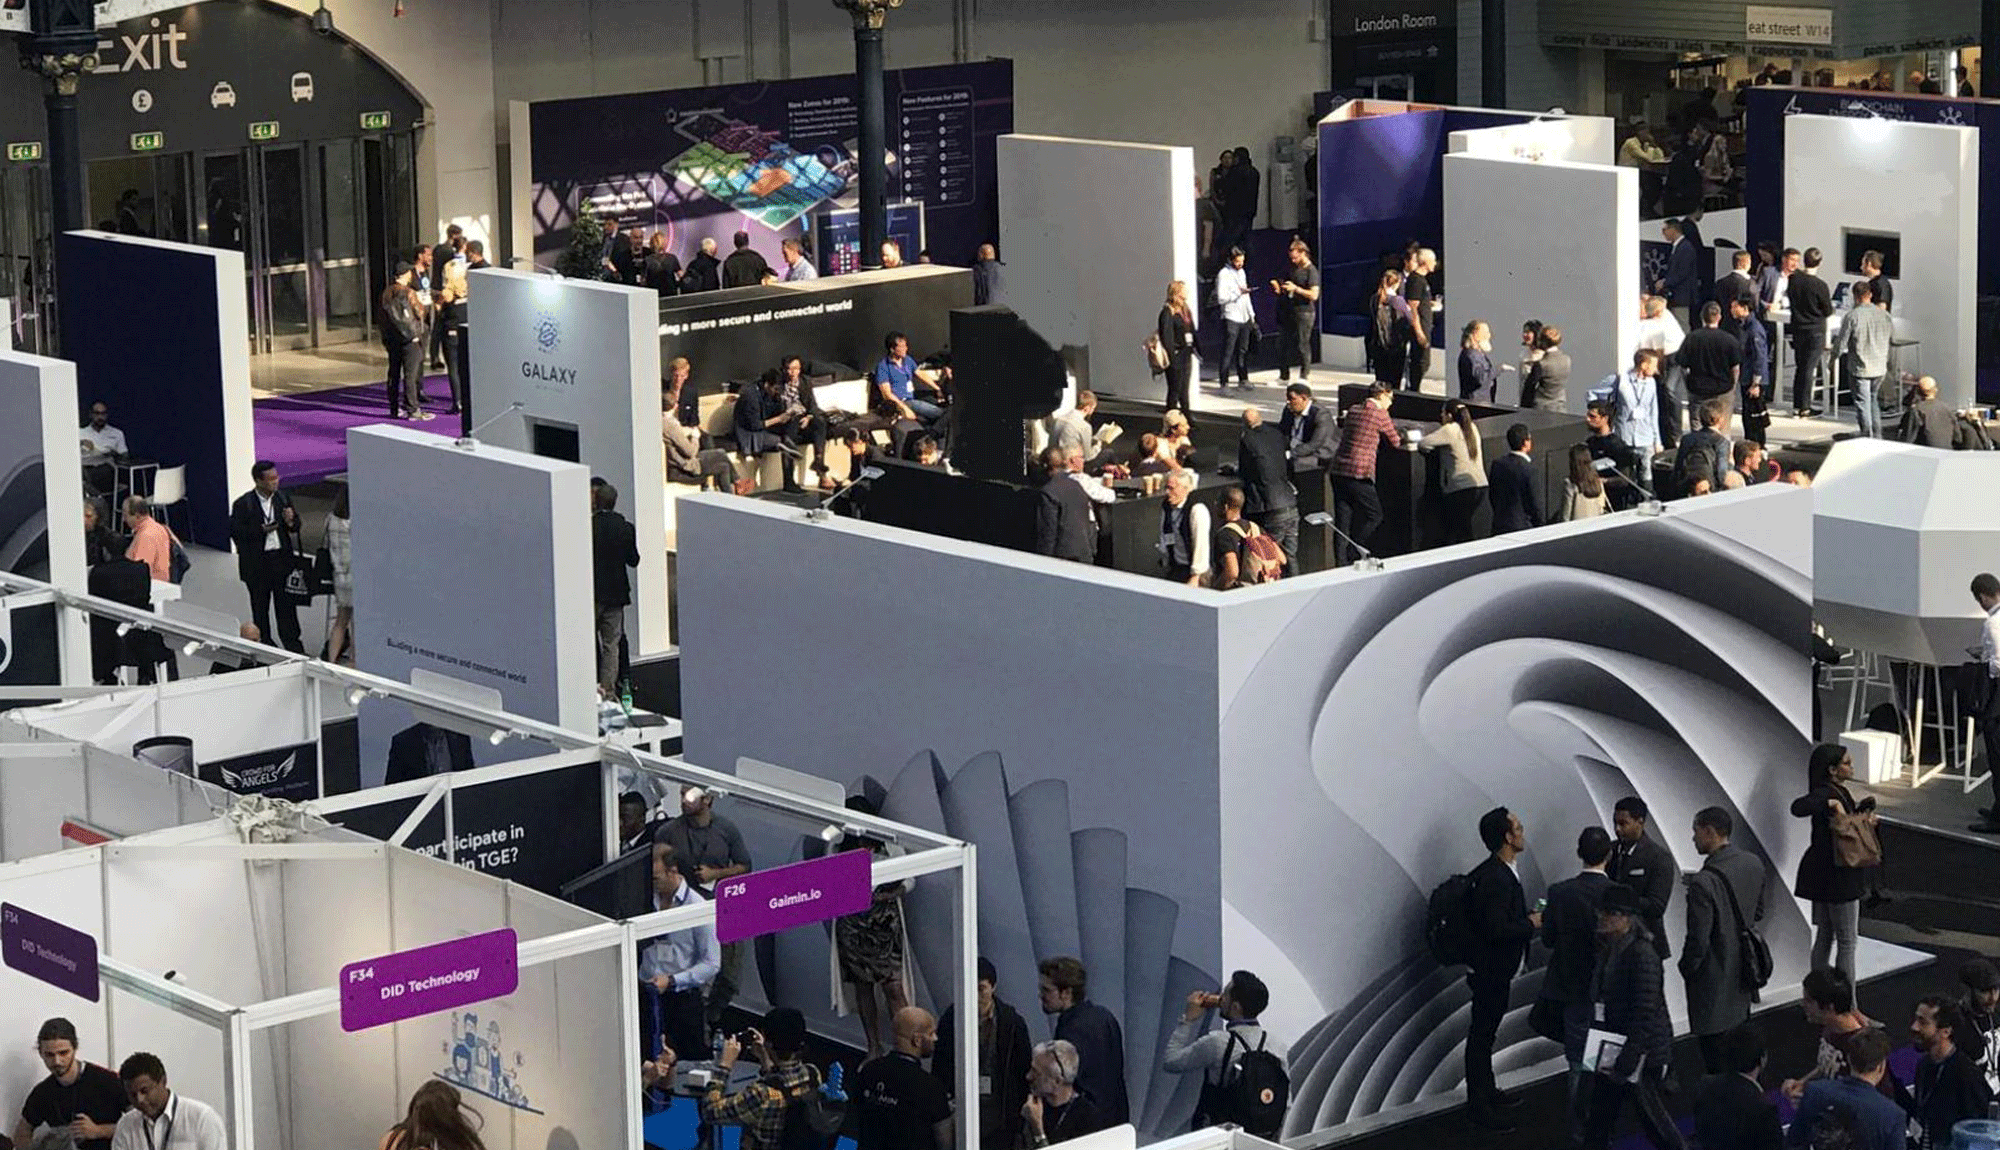 Tech Village install at Olympia